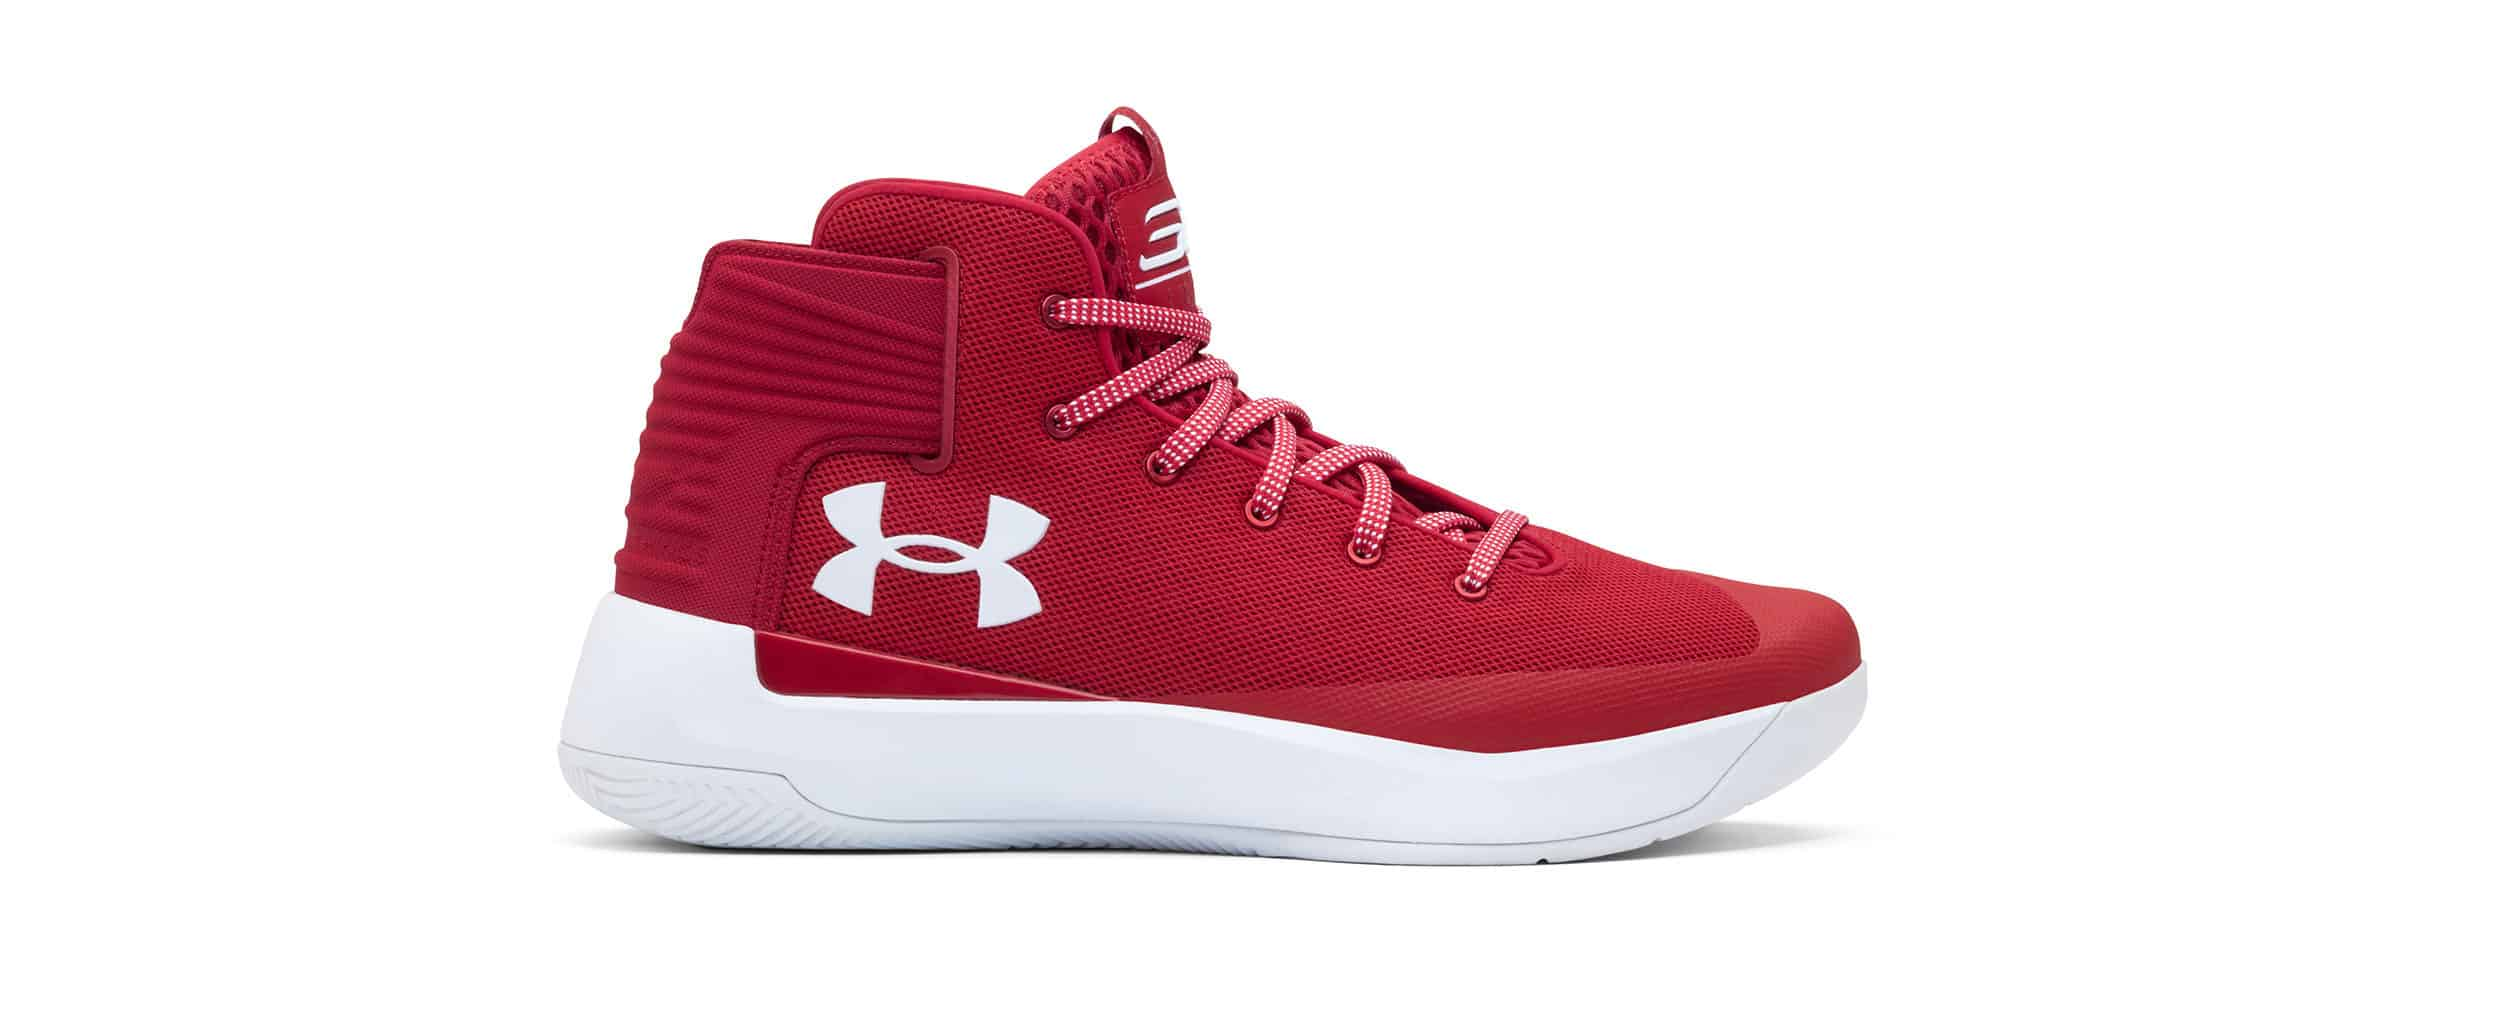 red mens basketball shoes